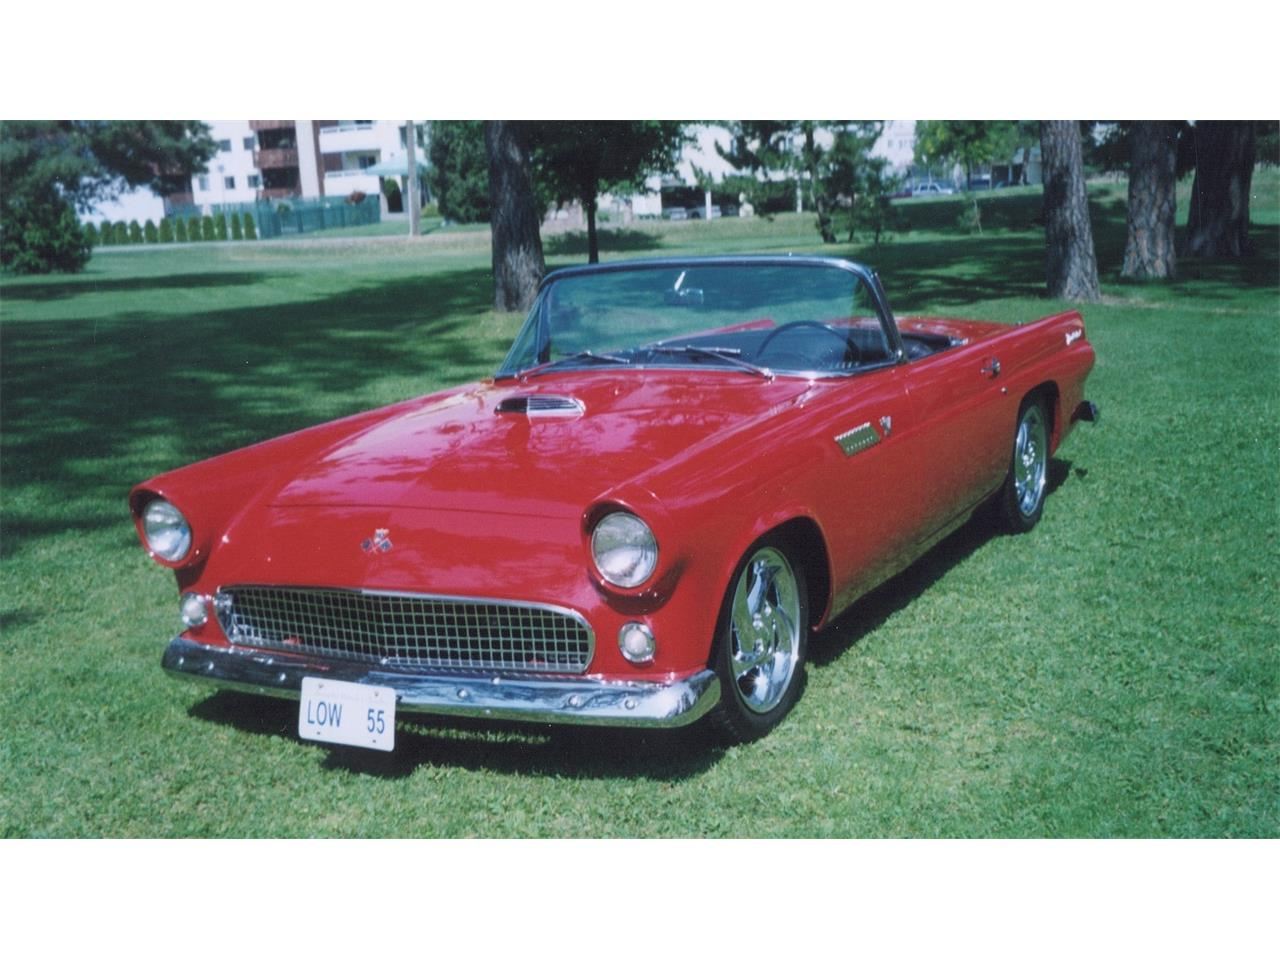 Large Picture of 1955 Ford Thunderbird - $39,500.00 Offered by a Private Seller - GI3T